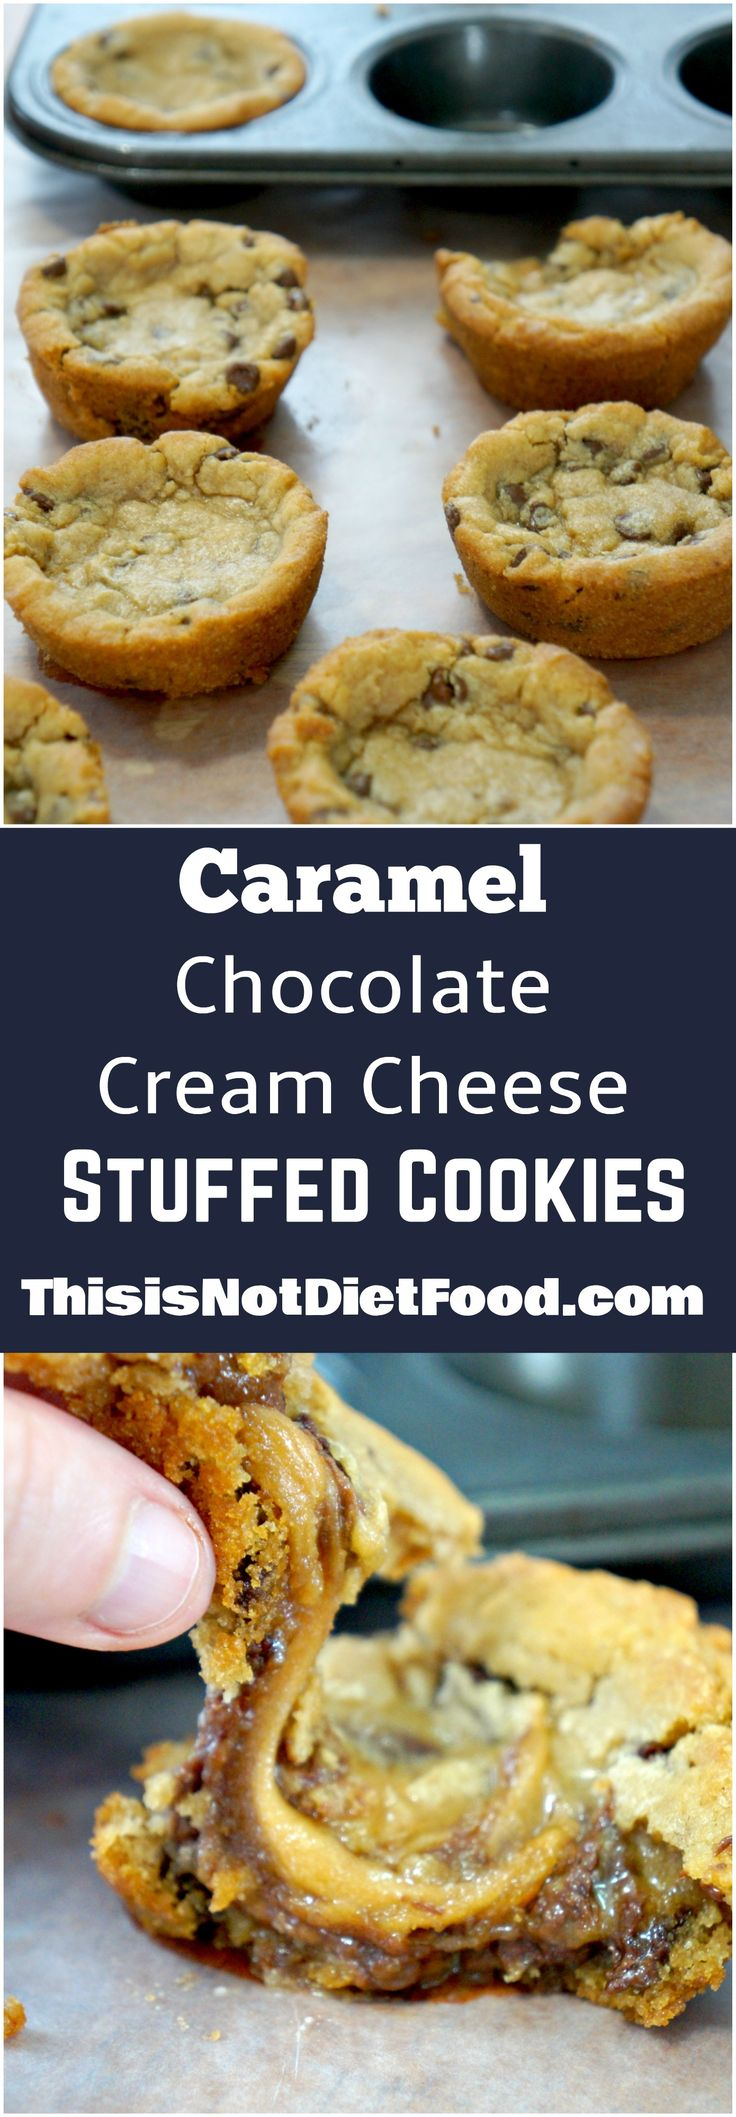 Chocolate Chip Cookies stuffed with Caramel and Chocolate Cream Cheese. Easy muffin tin cookies using Pillsbury chocolate chip cookie dough.